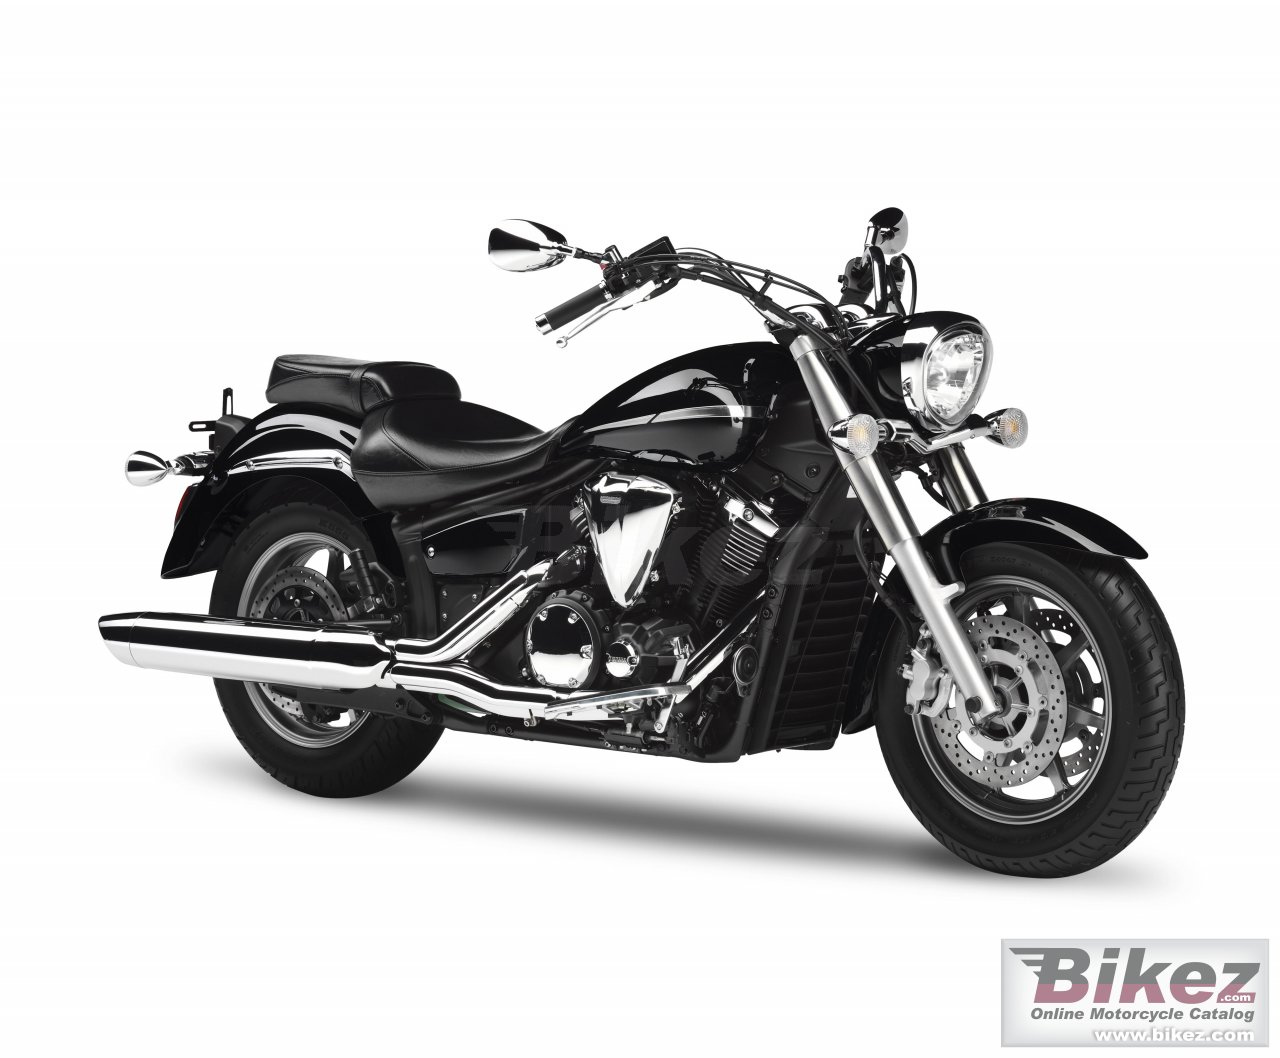 Big Yamaha xvs1300a midnight star picture and wallpaper from Bikez.com